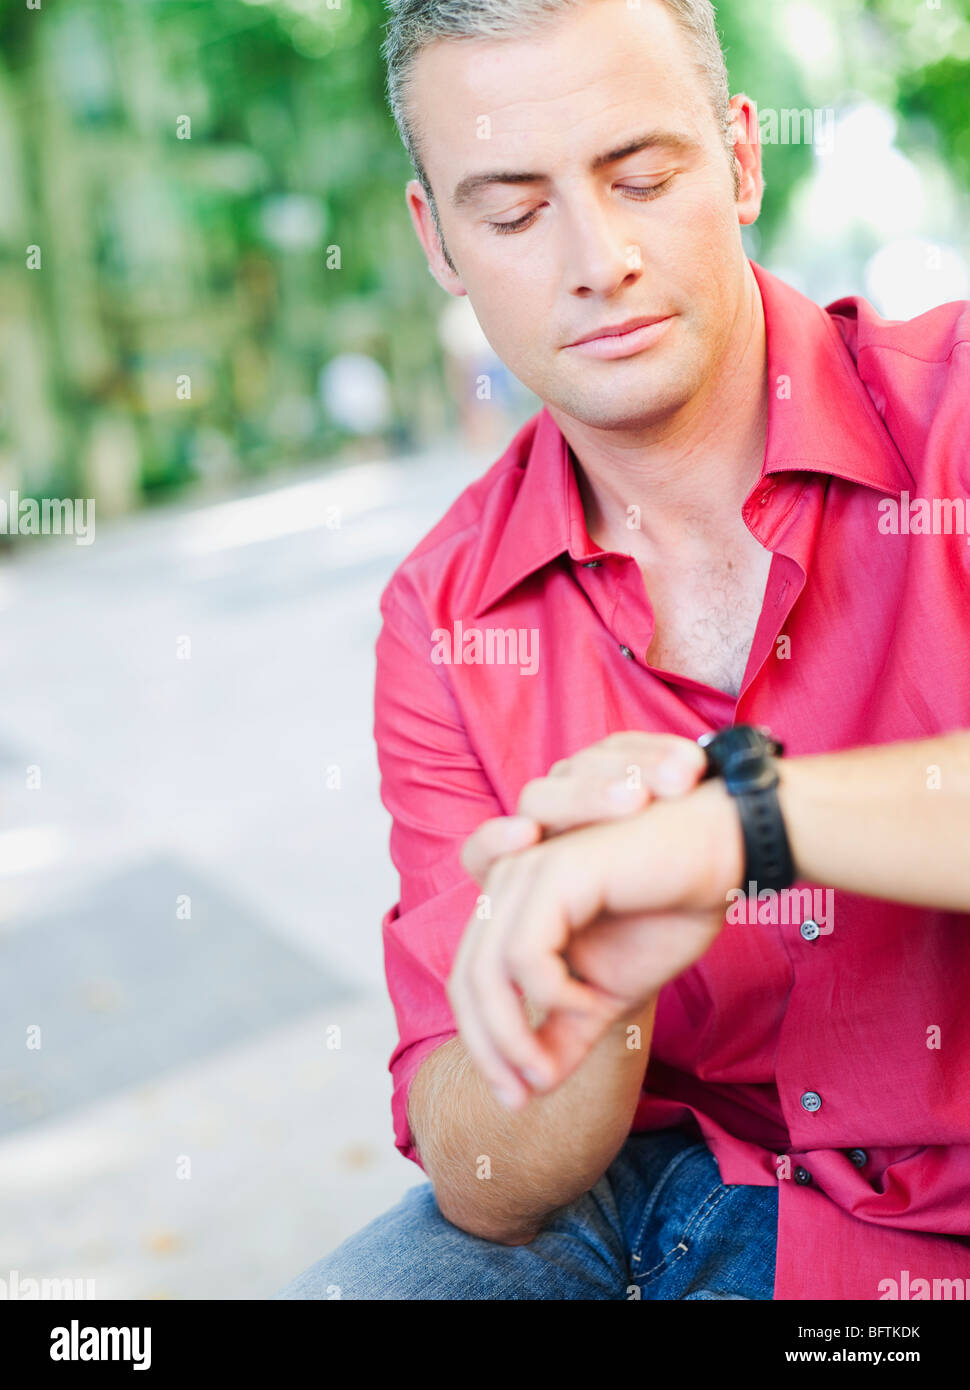 man looking at his watch - Stock Image